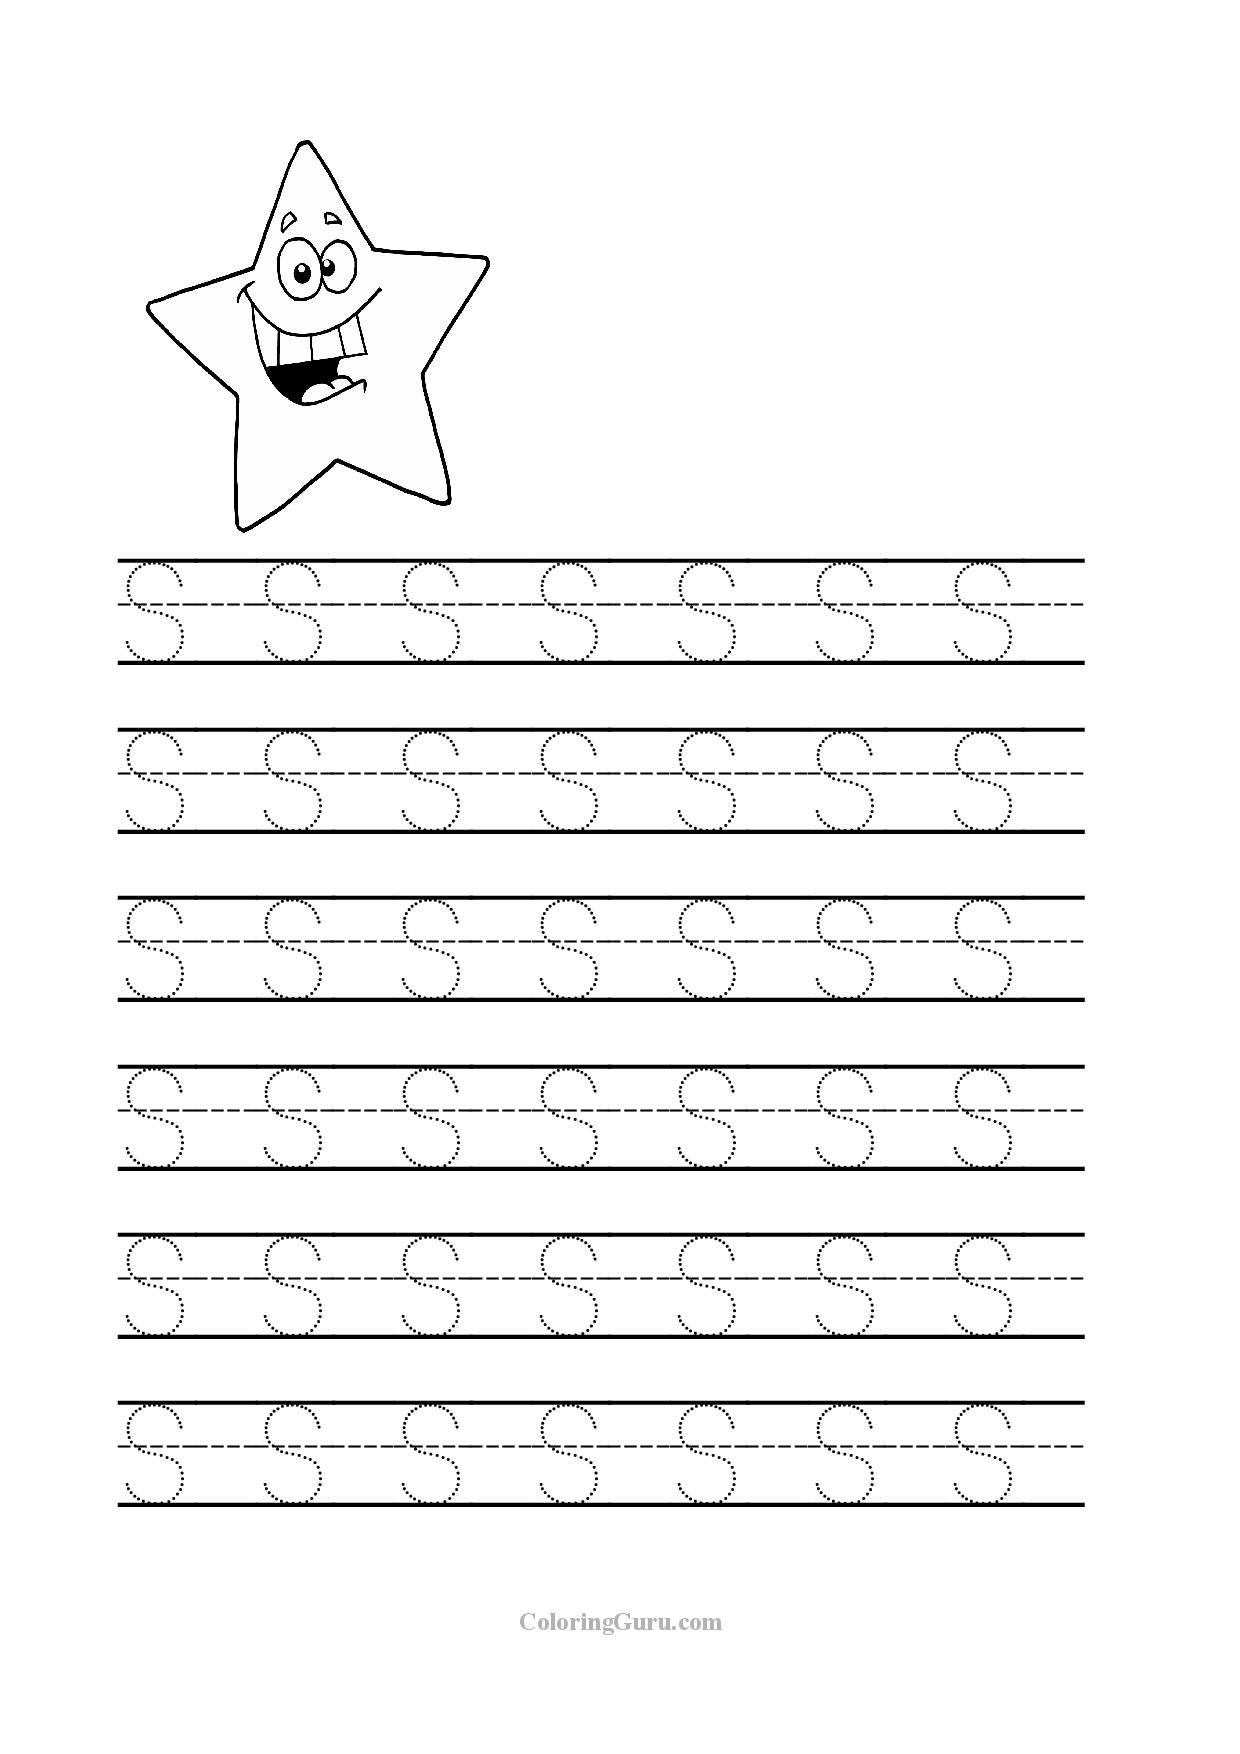 Free Printable Tracing Letter S Worksheets For Preschool in S Letter Worksheets